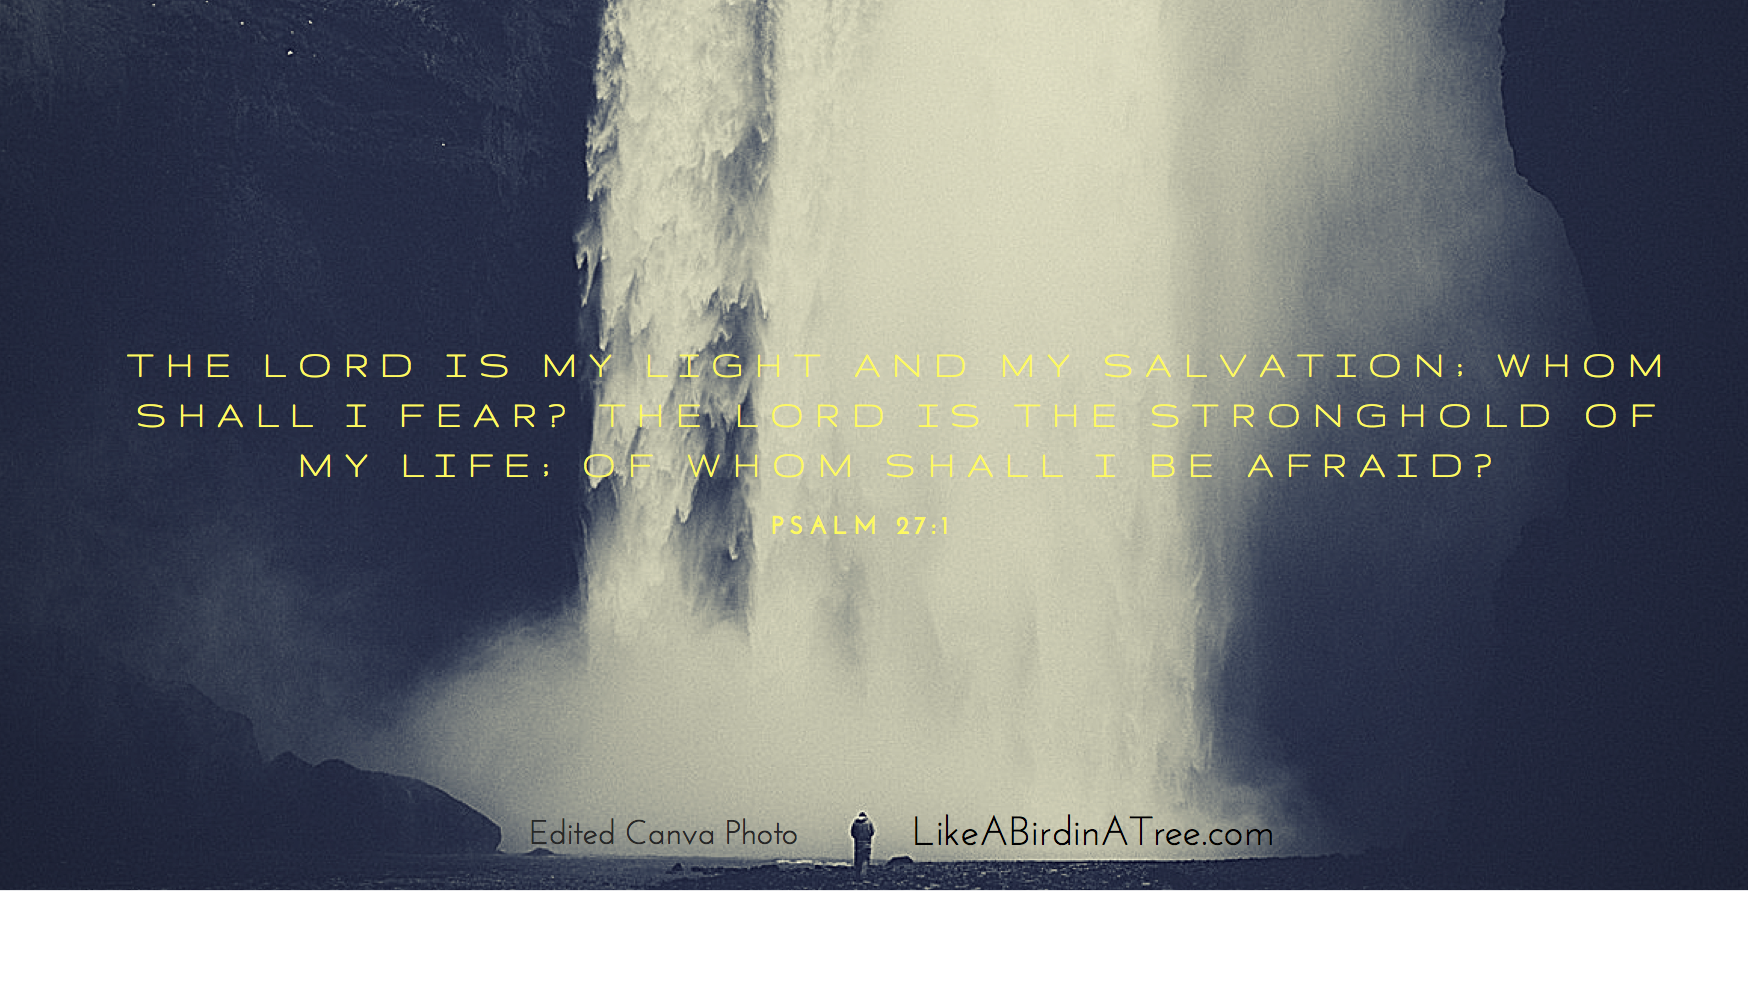 The LORD is my light and my salvation; whom shall I fear- The LORD is the stronghold of my life; of